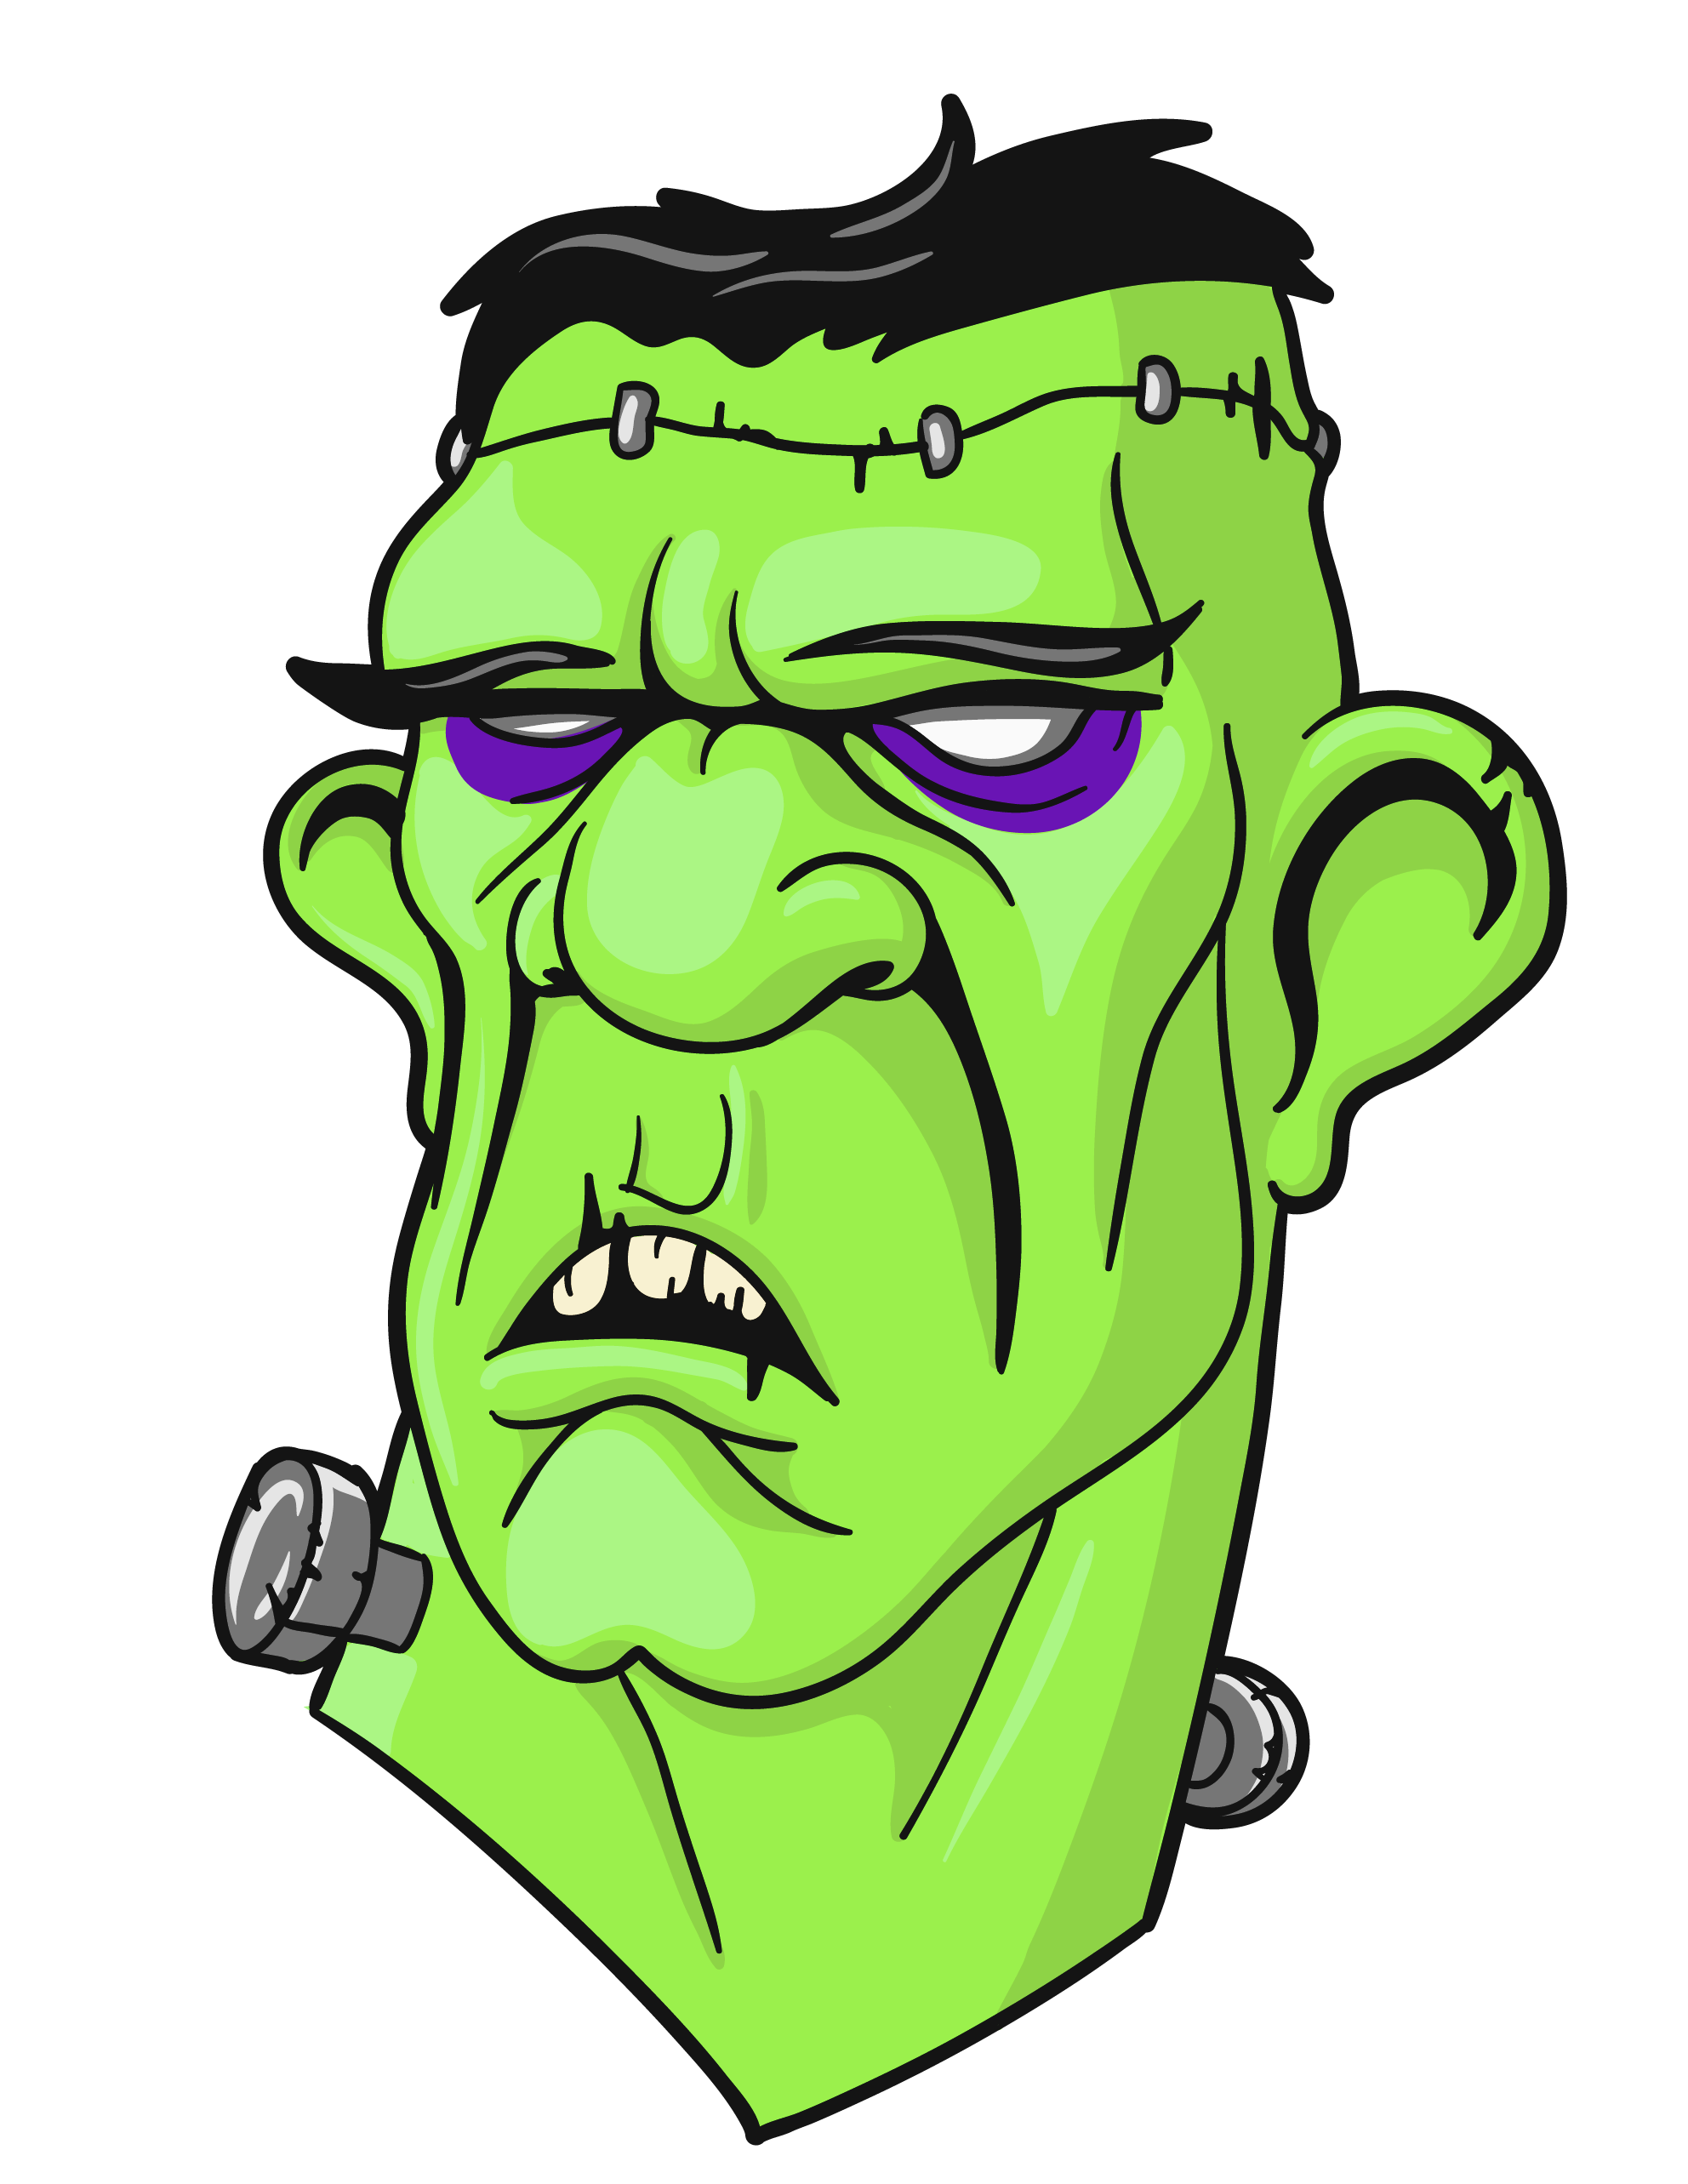 Head png clipart gallery. Stitches vector frankenstein picture library download